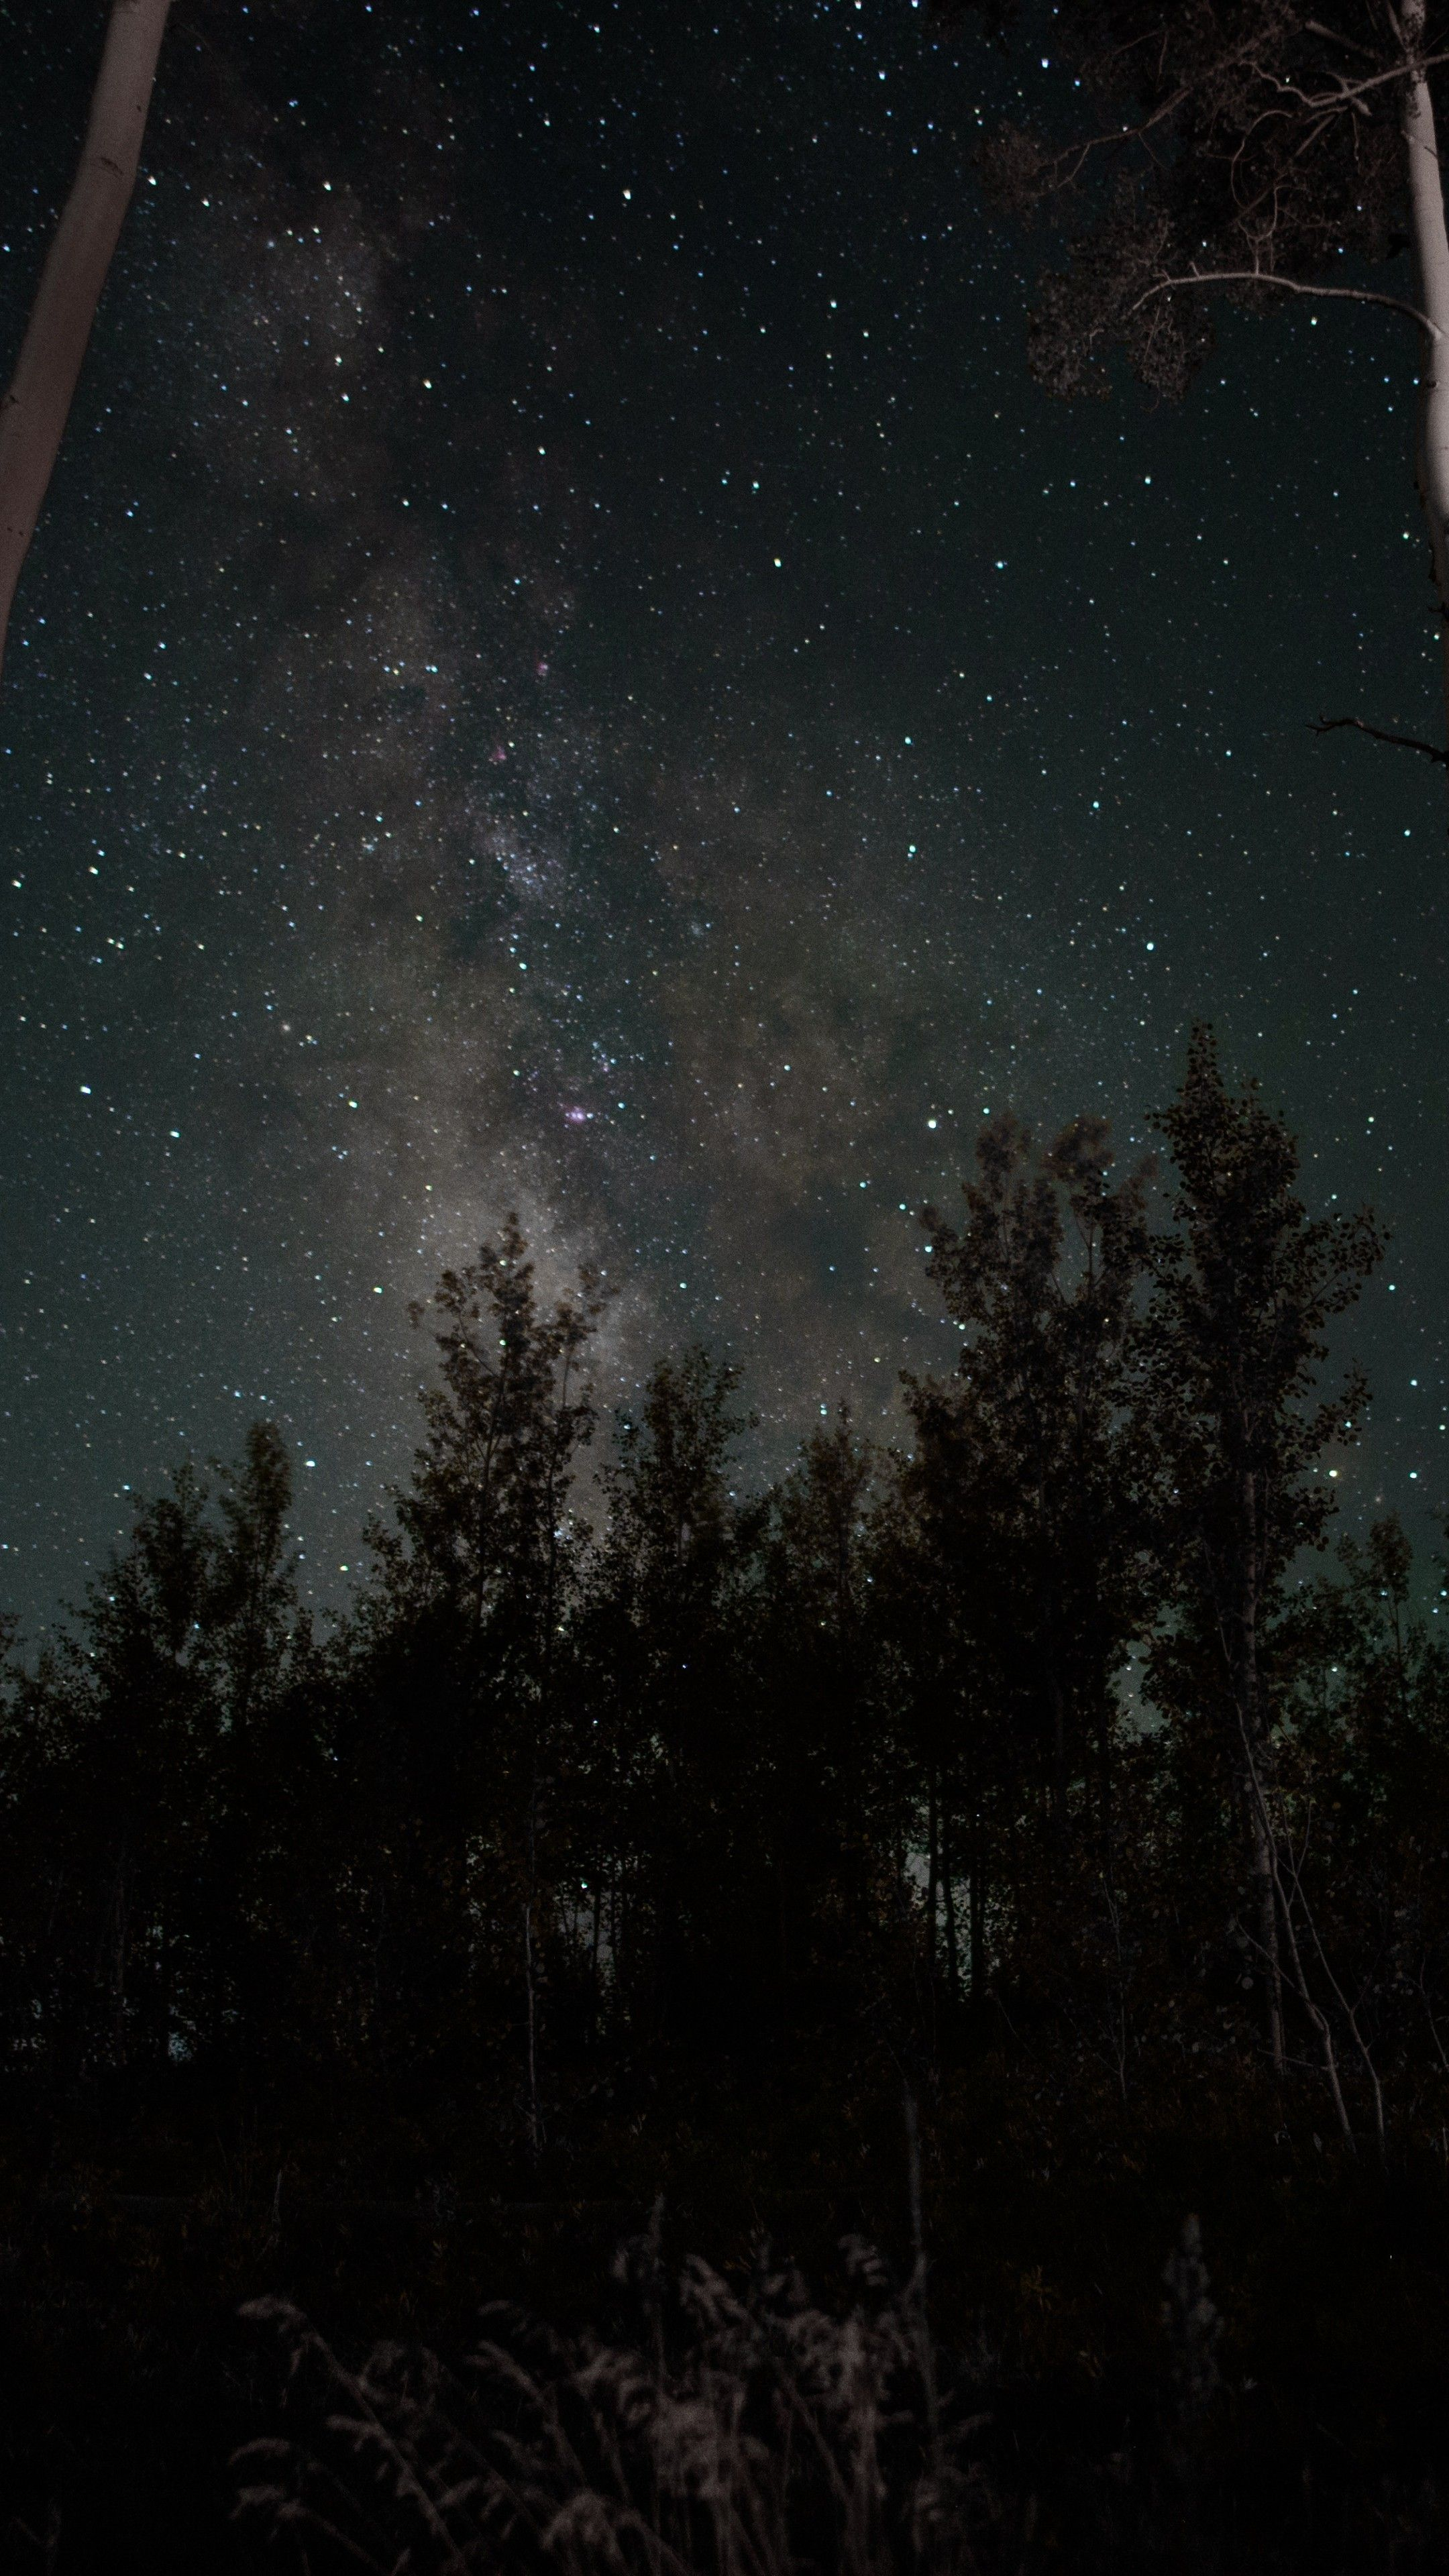 64+ Starry Night Wallpapers on WallpaperPlay Night sky